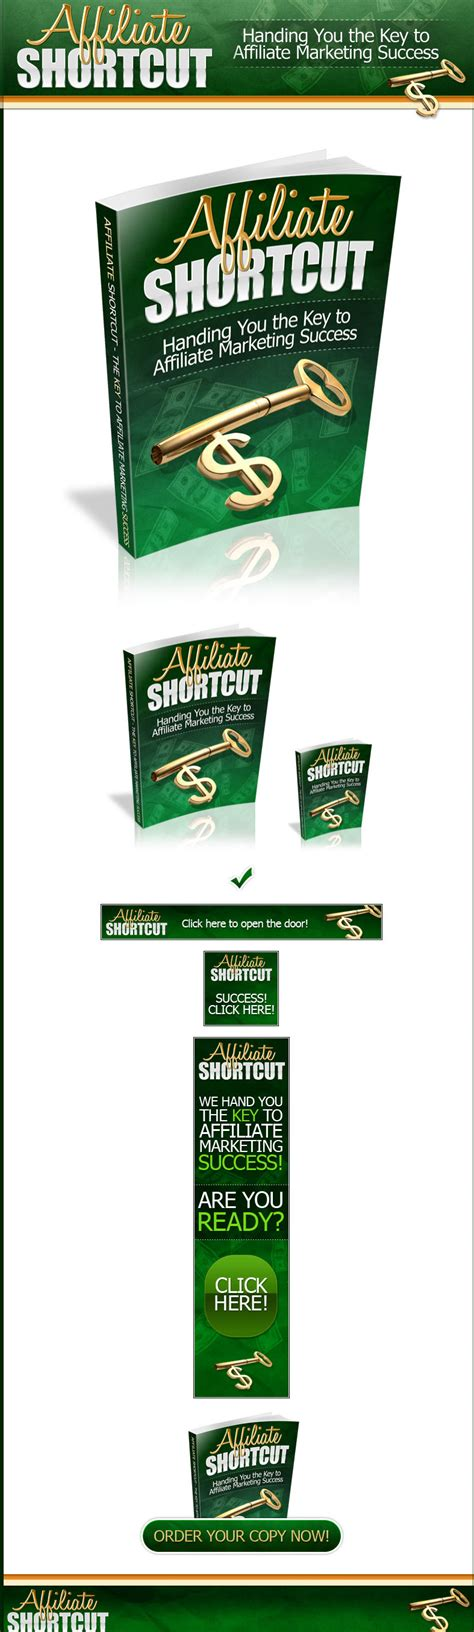 Plr Ebooks With Giveaway Rights - affiliate marketing shortcut plr ebook with private label rights